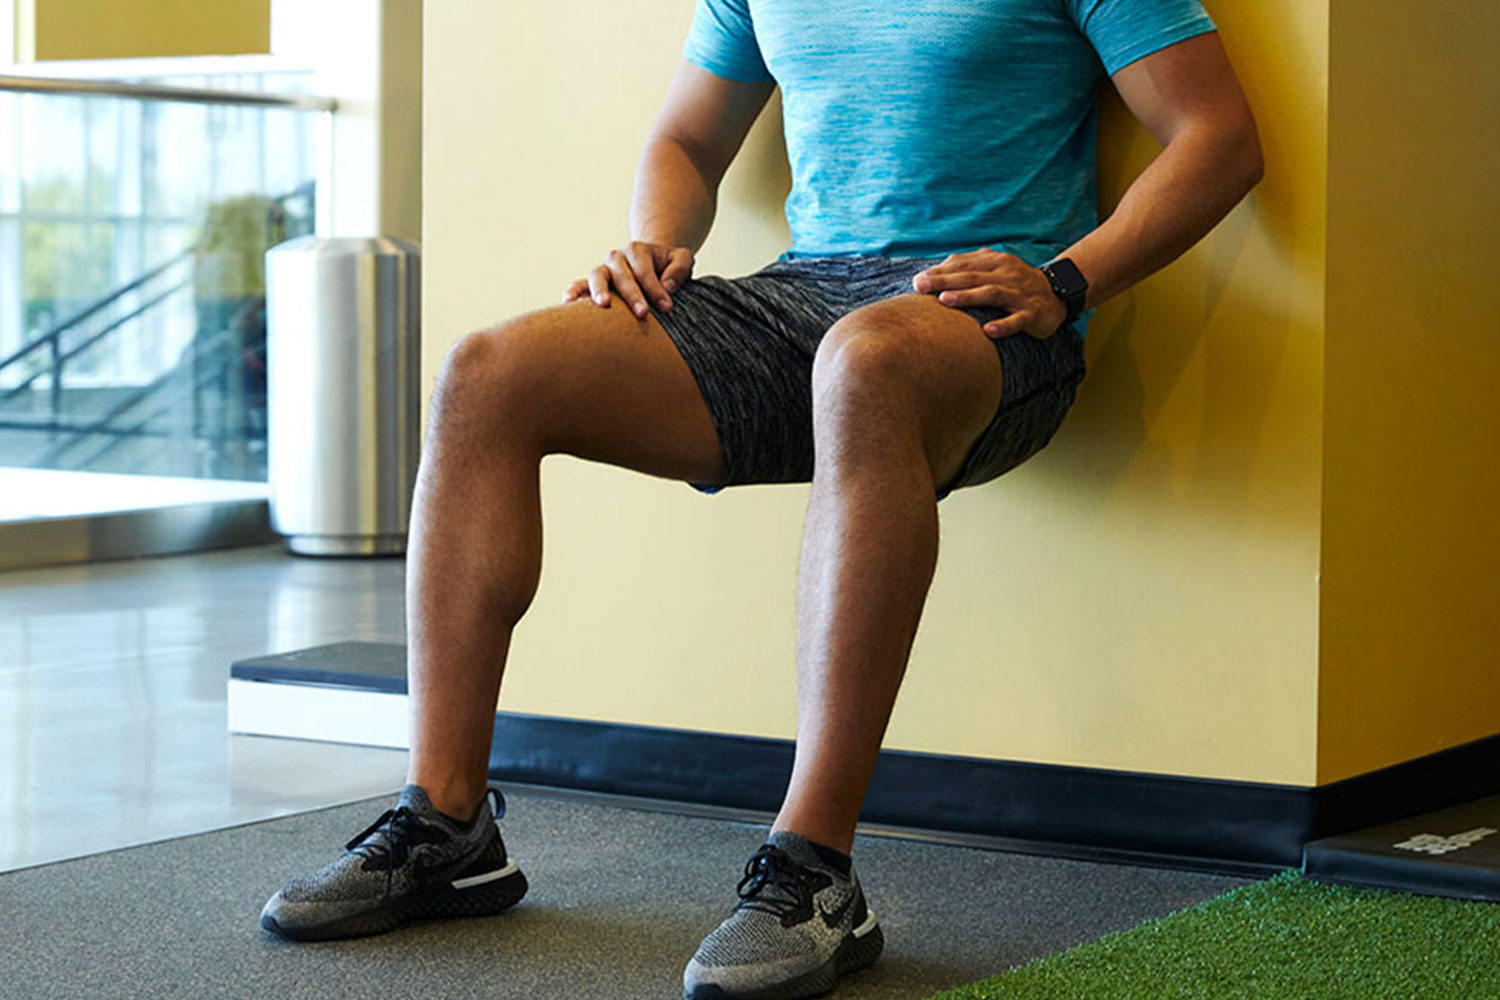 Try These Exercises to Build Strength for Sore Knees